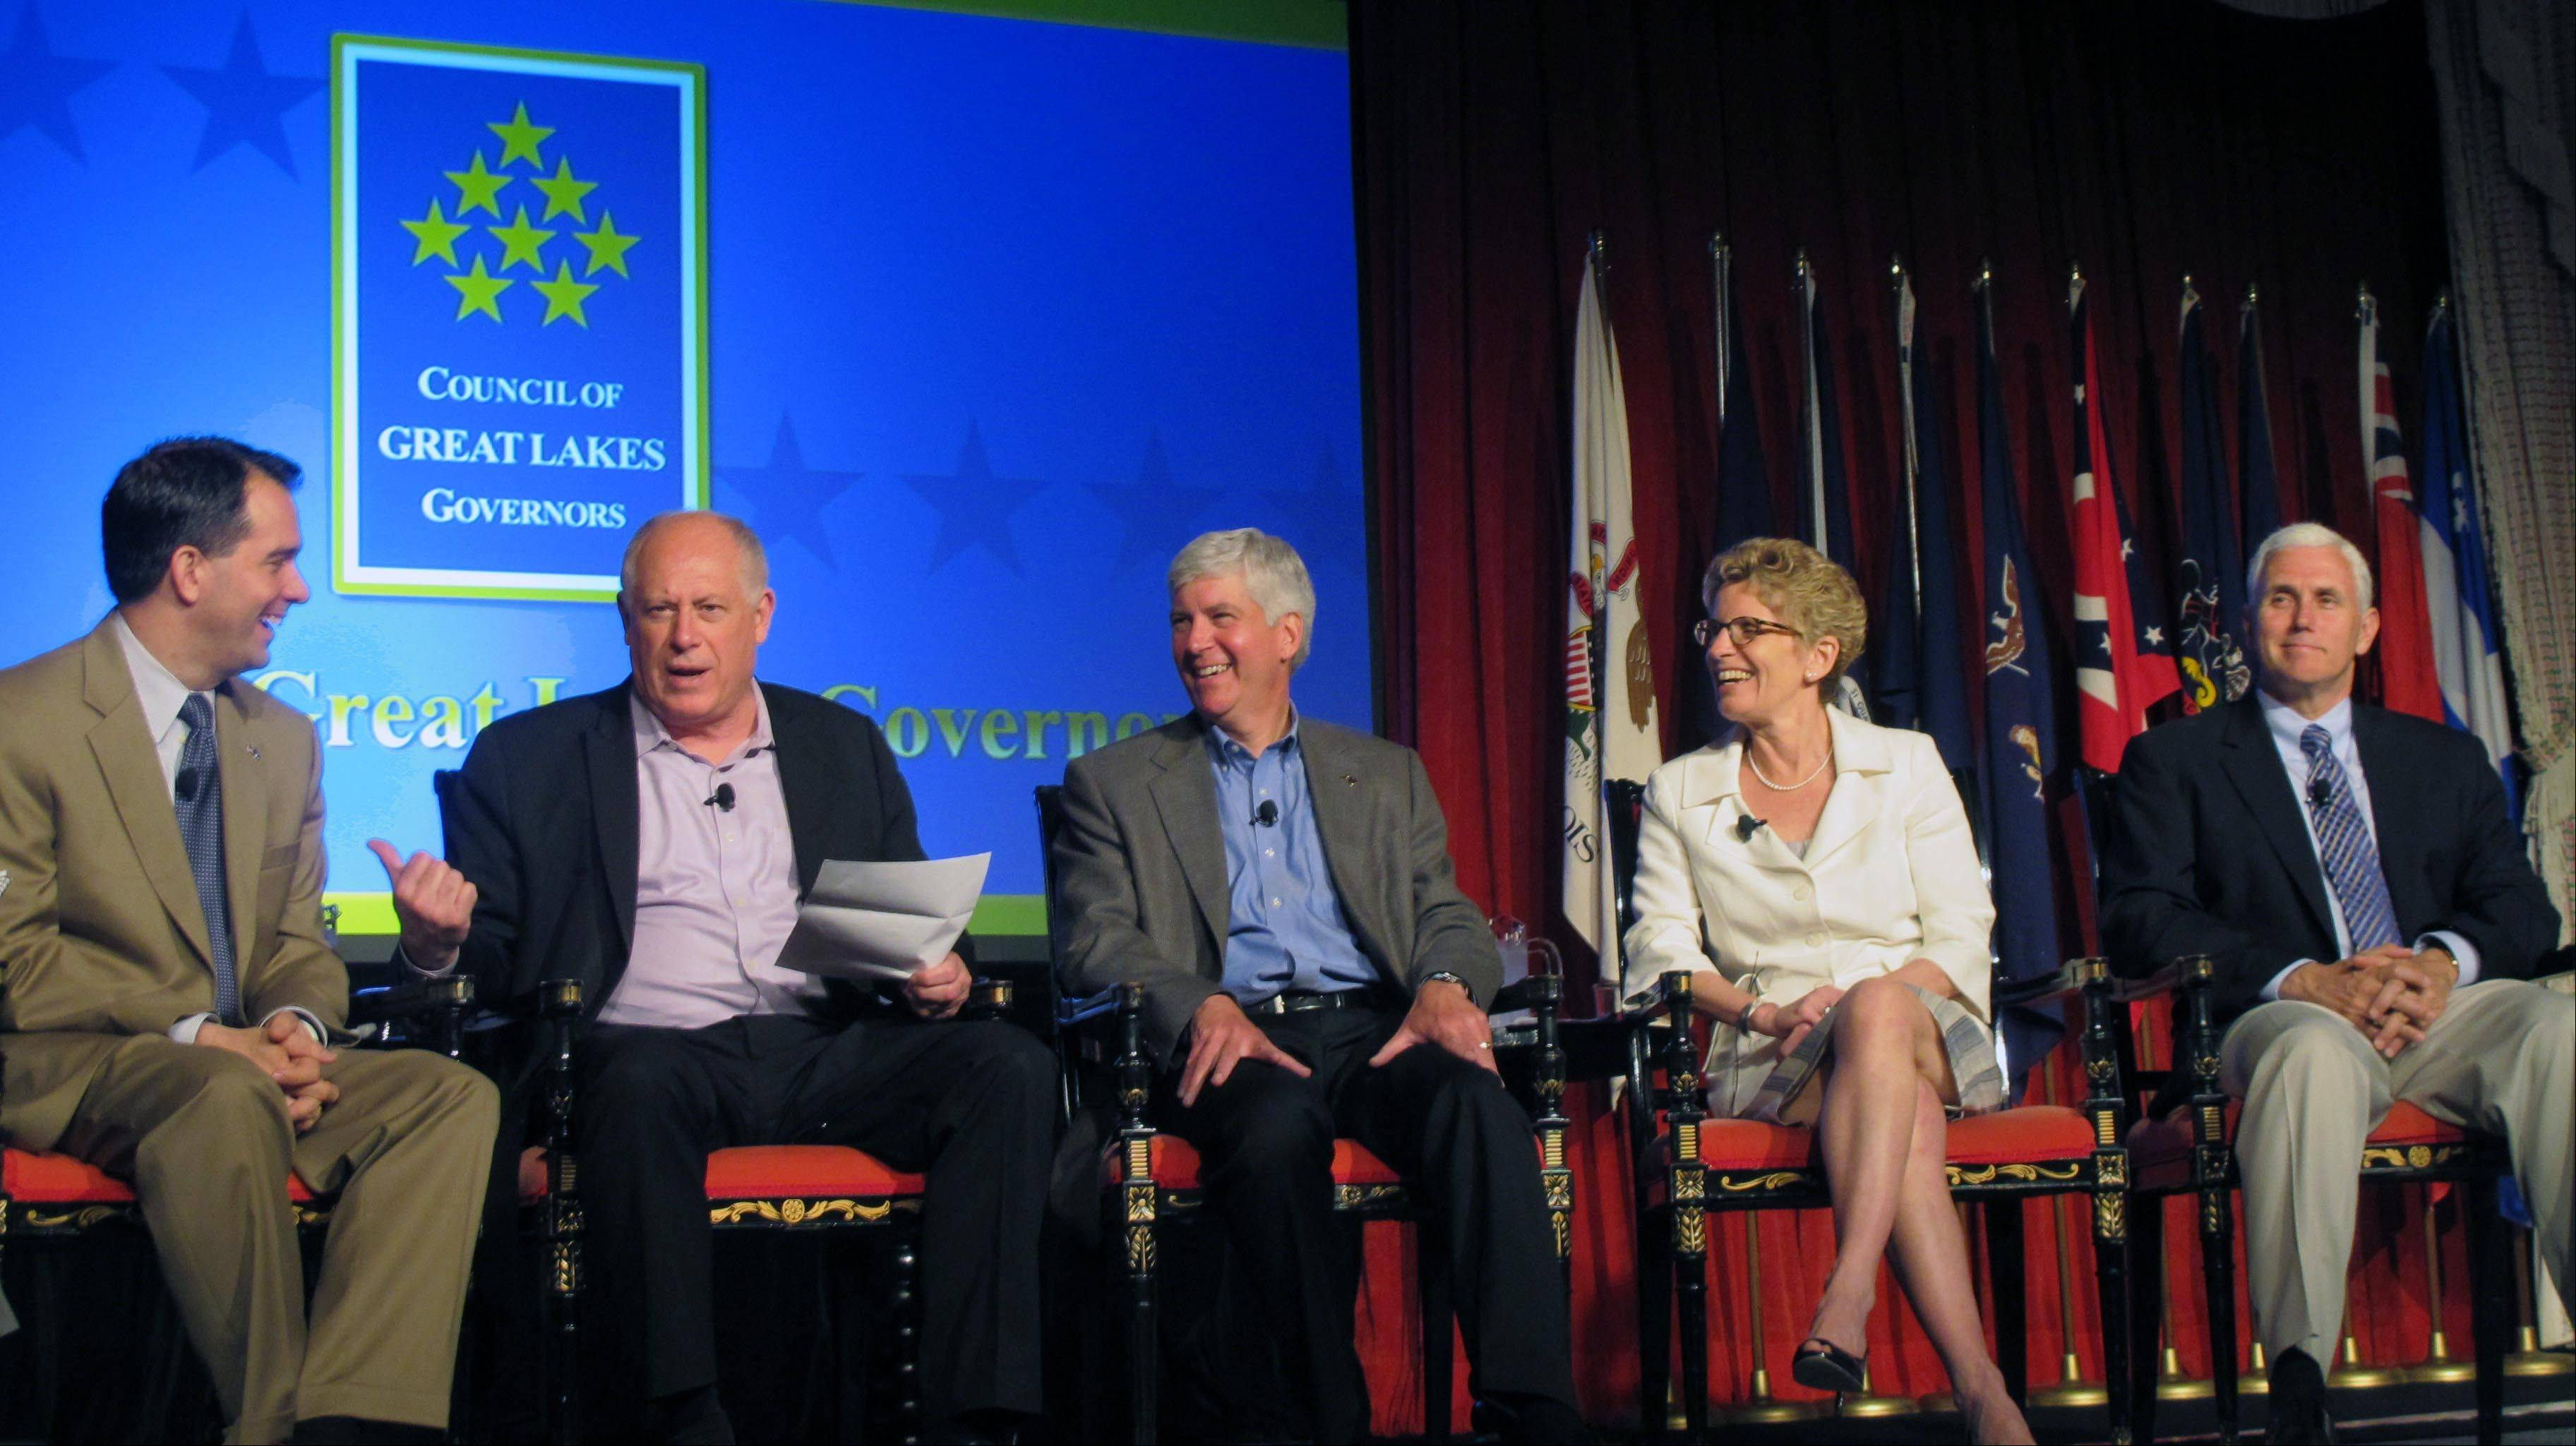 In this photo taken June 1, 2013, on Mackinac Island, Mich., members of the Council of Great Lakes Governors discuss regional policies on trade and water quality. From left: Wisconsin Gov. Scott Walker, Illinois Gov. Pat Quinn, Michigan Gov. Rick Snyder, Ontario Premier Kathleen Wynne, and Indiana Gov. Mike Pence.